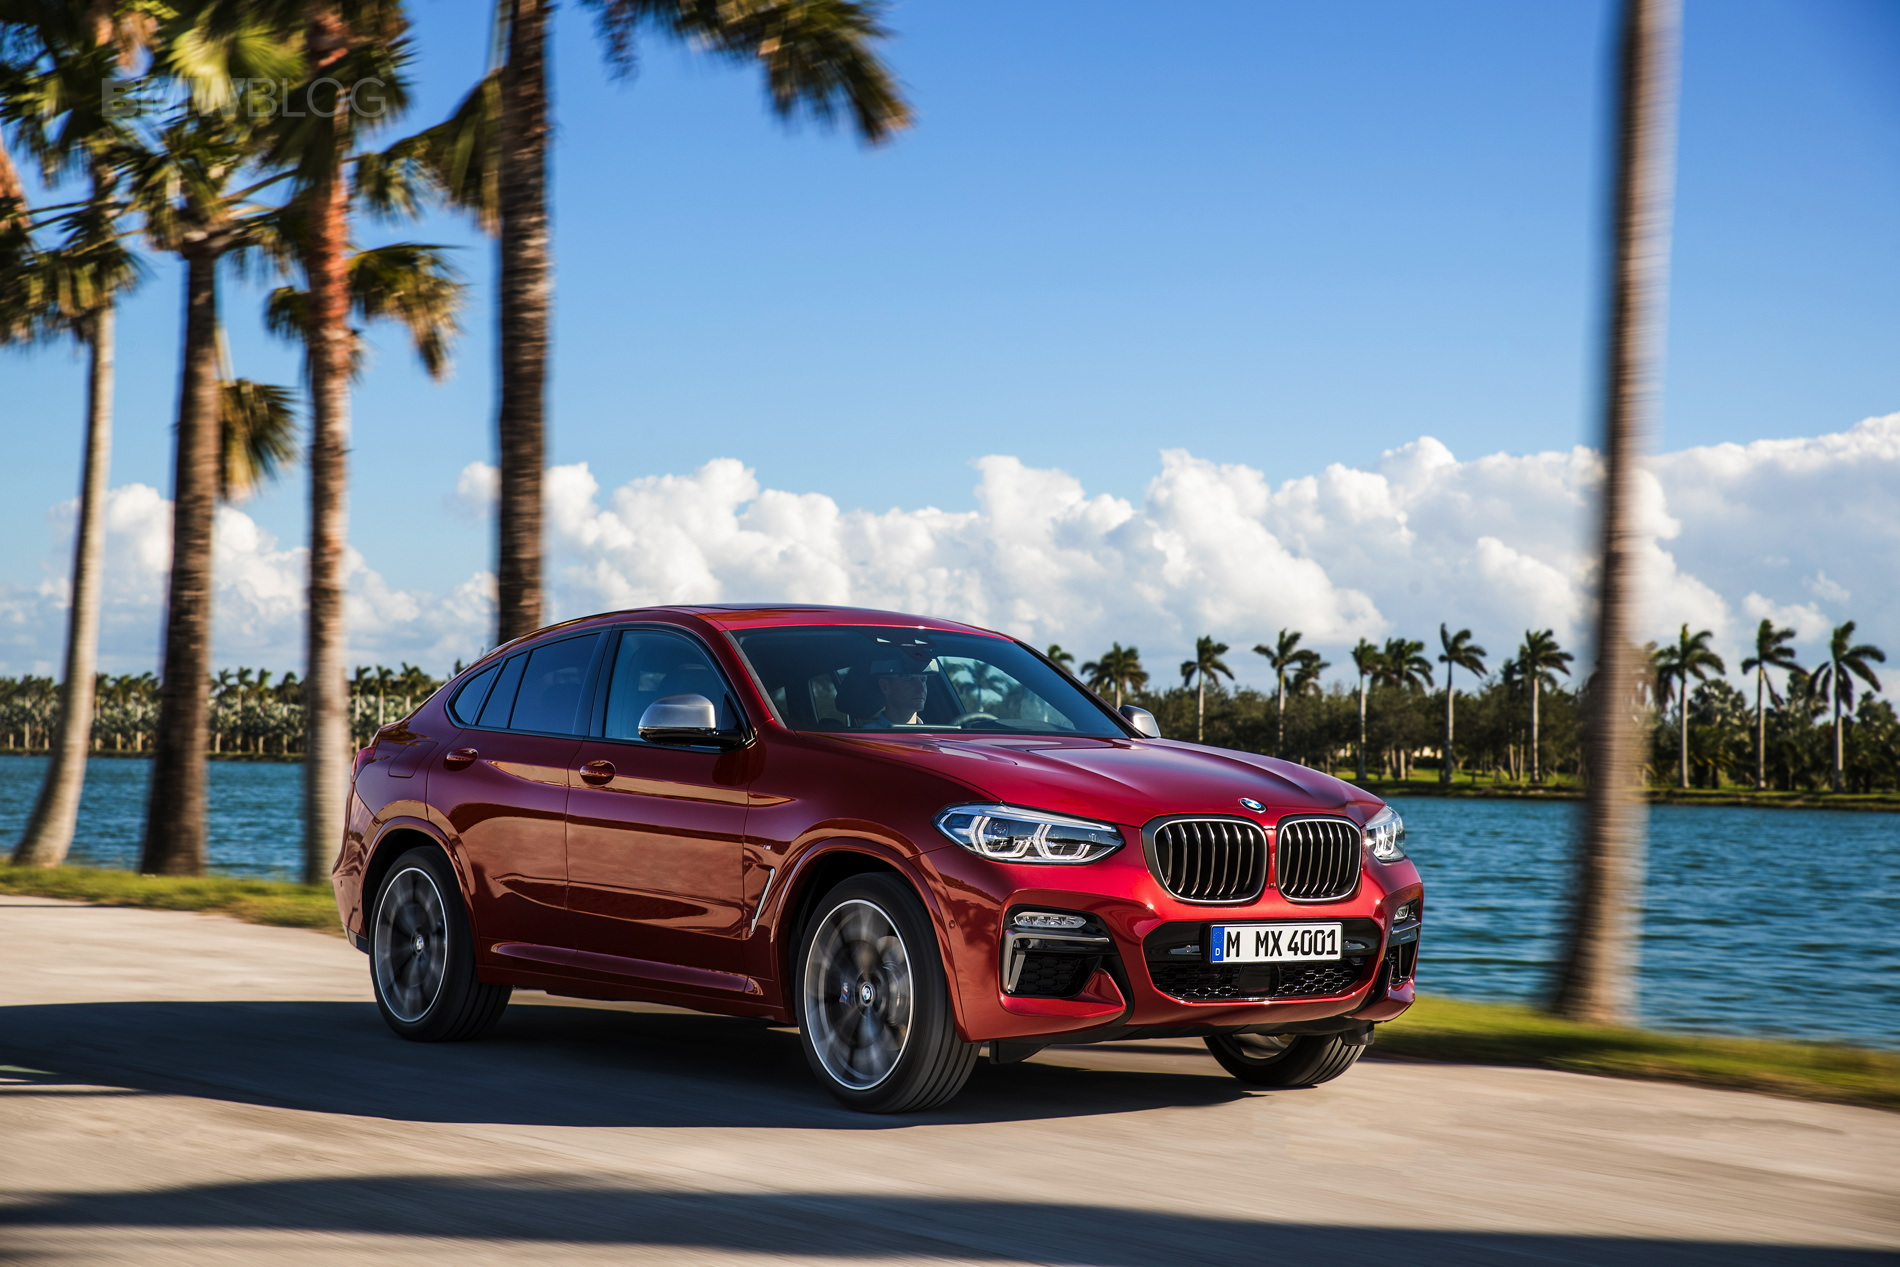 New 2018 BMW X4 M40d exterior design 18